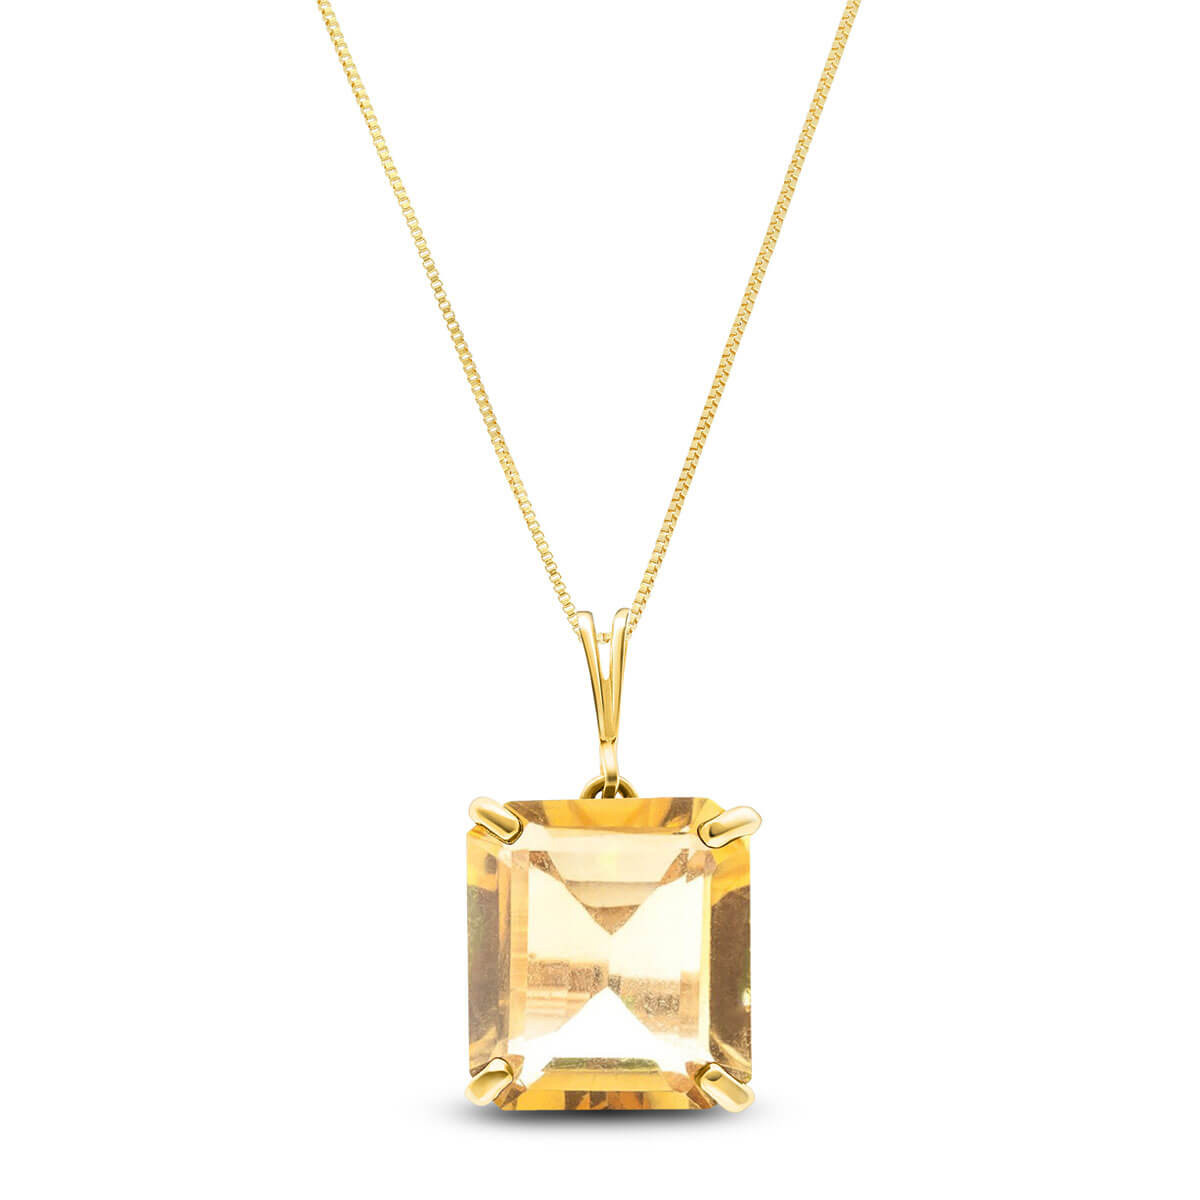 Citrine Auroral Pendant Necklace 6.5 ct in 9ct Gold